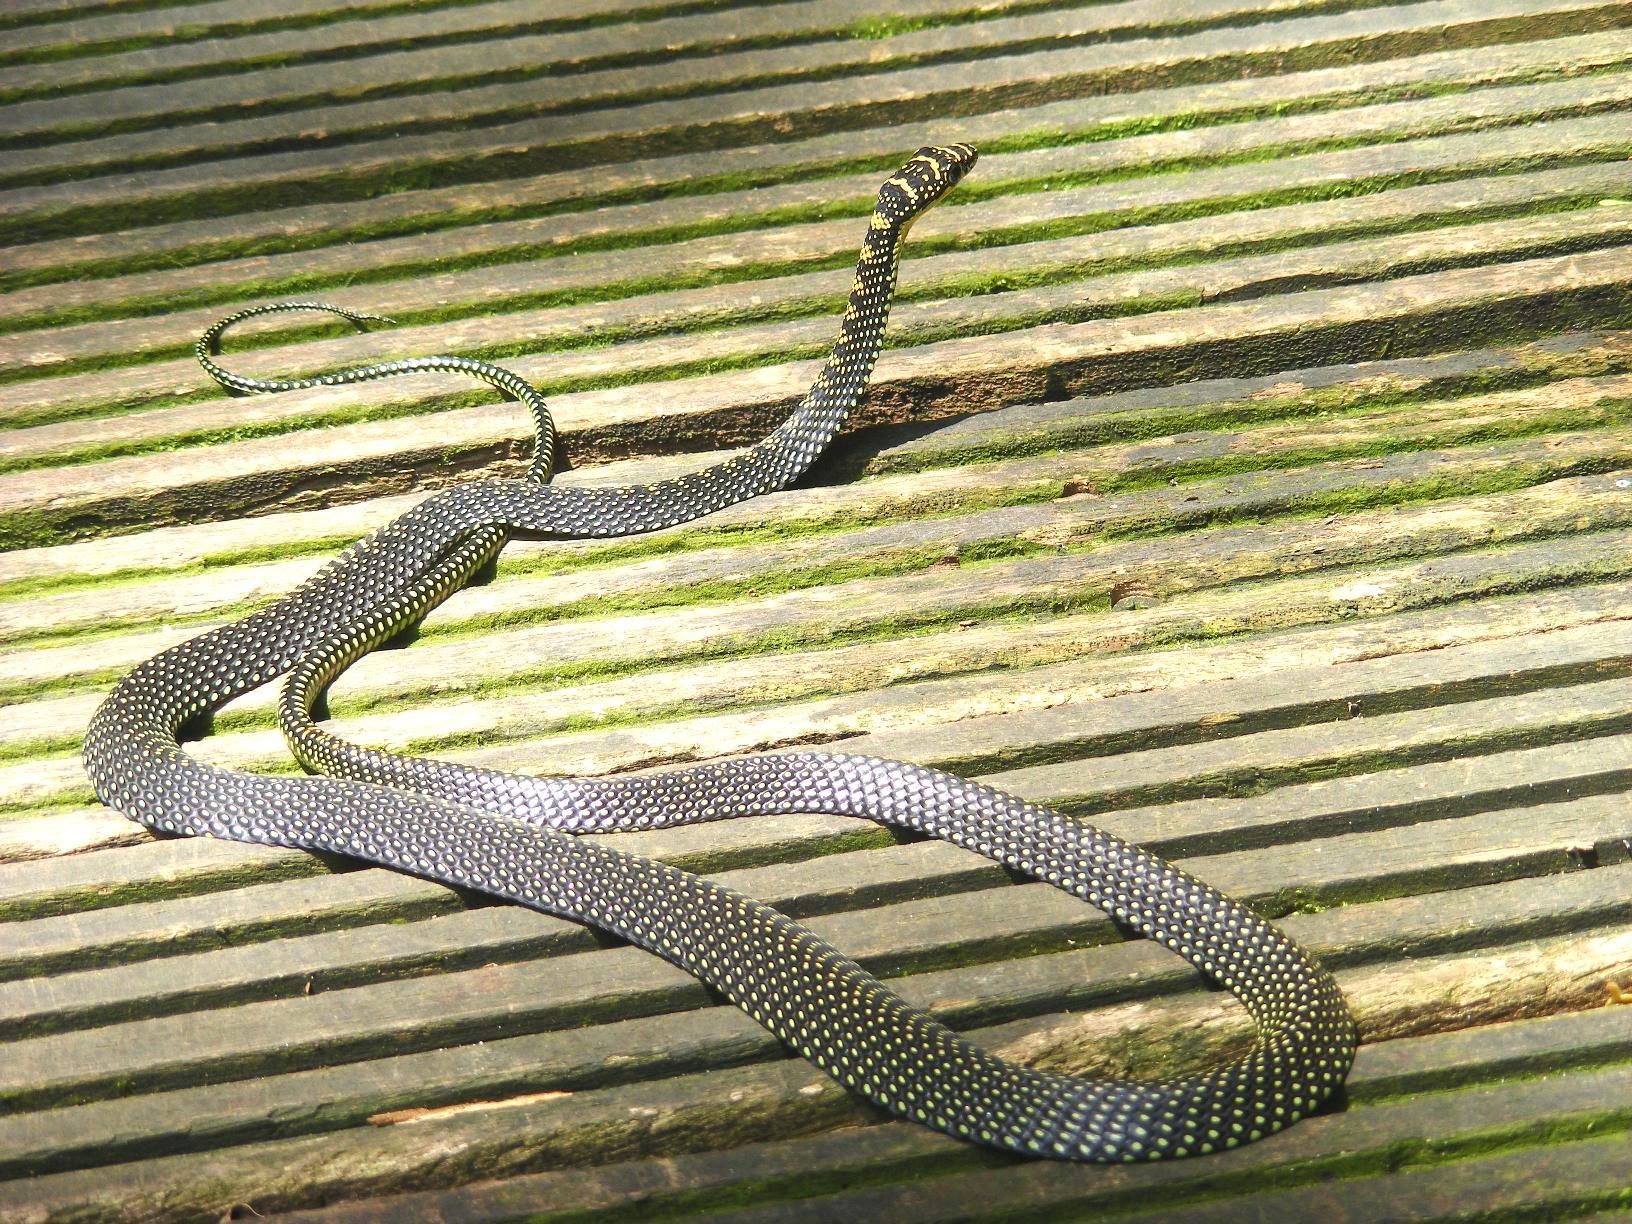 Image of Garden Flying Snake